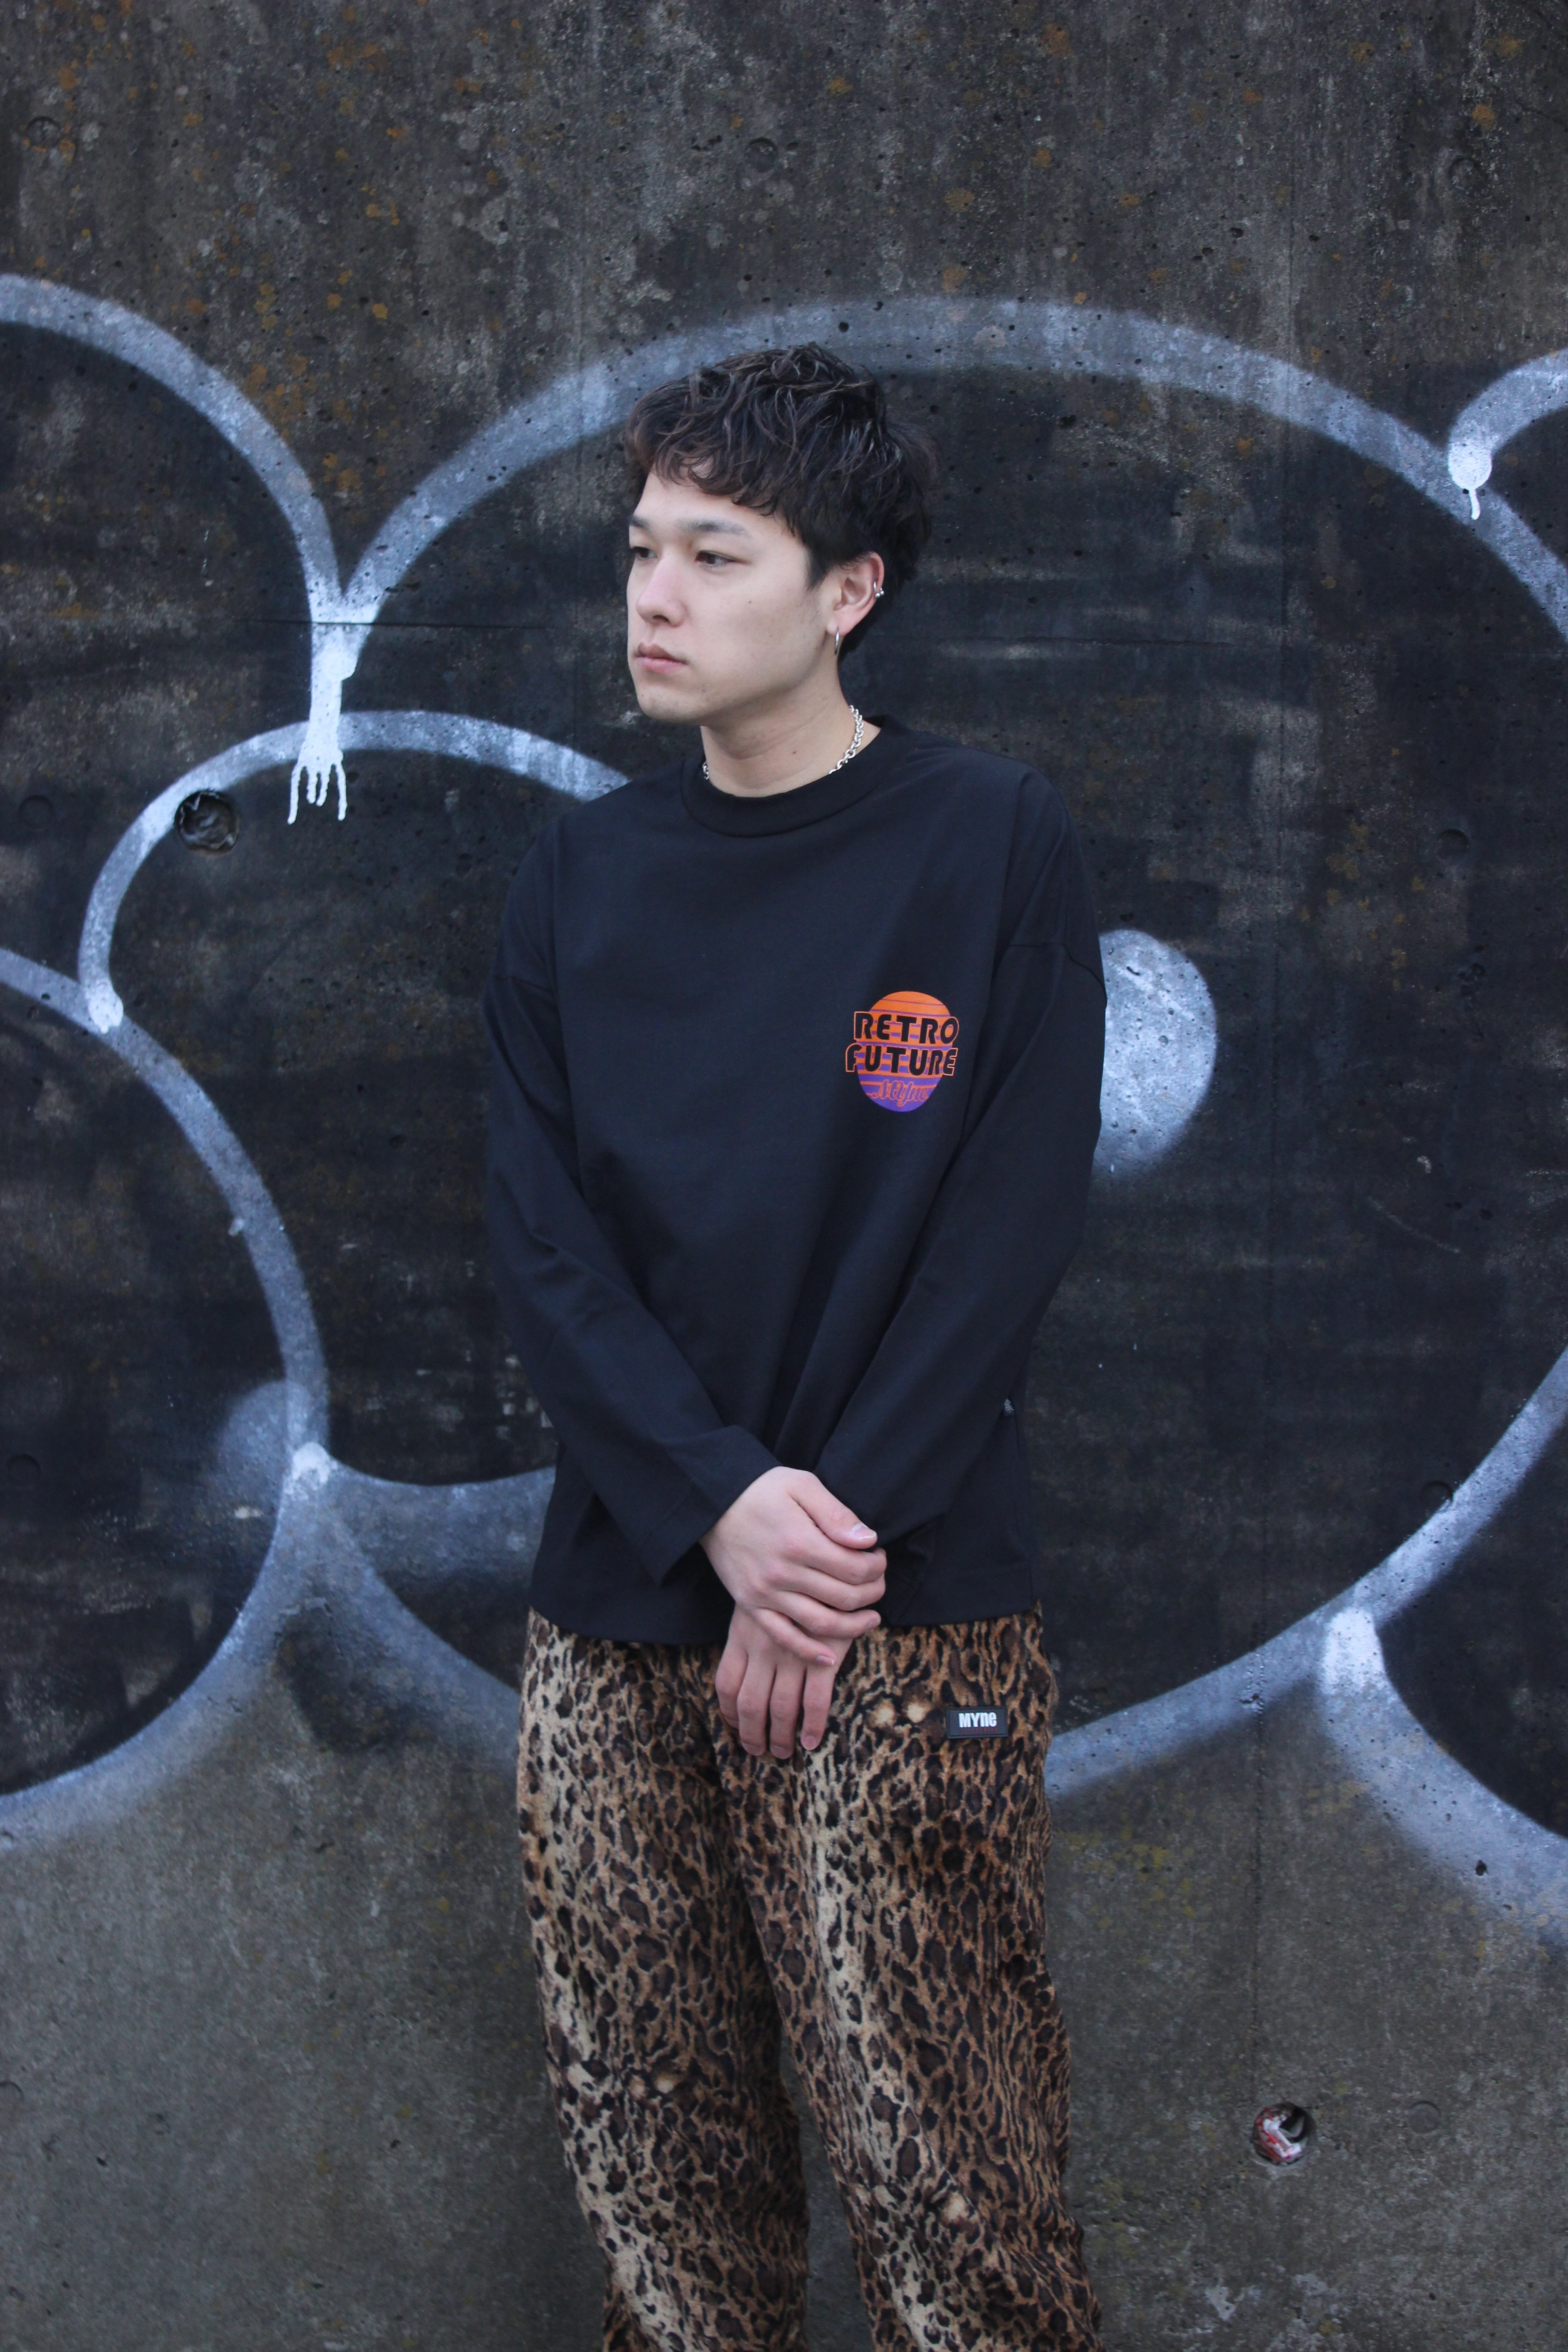 RETRO FUTURE L/S T-shirt / BLACK - 画像3